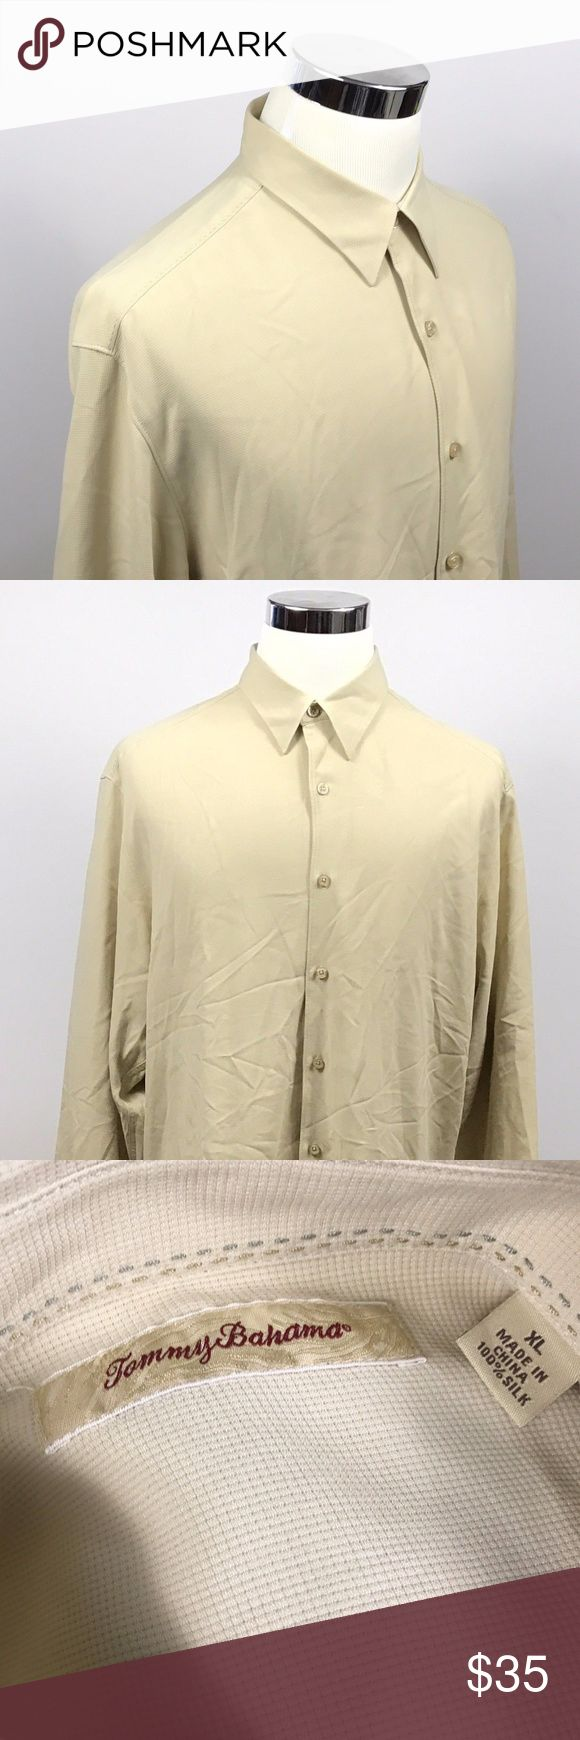 Tommy Bahama Mens XL 100% Silk Beige Ivory Checker Tommy Bahama Mens XL 100% Silk Beige Ivory Checker Long Sleeve Vacation Shirt  Measurements (inches): Pit to Pit (across the chest): 25.5 Sleeve (center collar to cuff): 37 Length (top of collar to hem): 34  Condition:  This item is in good pre-owned condition! Free from rips & stains.  All items come from a smoke/ pet free environment. Tommy Bahama Shirts Casual Button Down Shirts